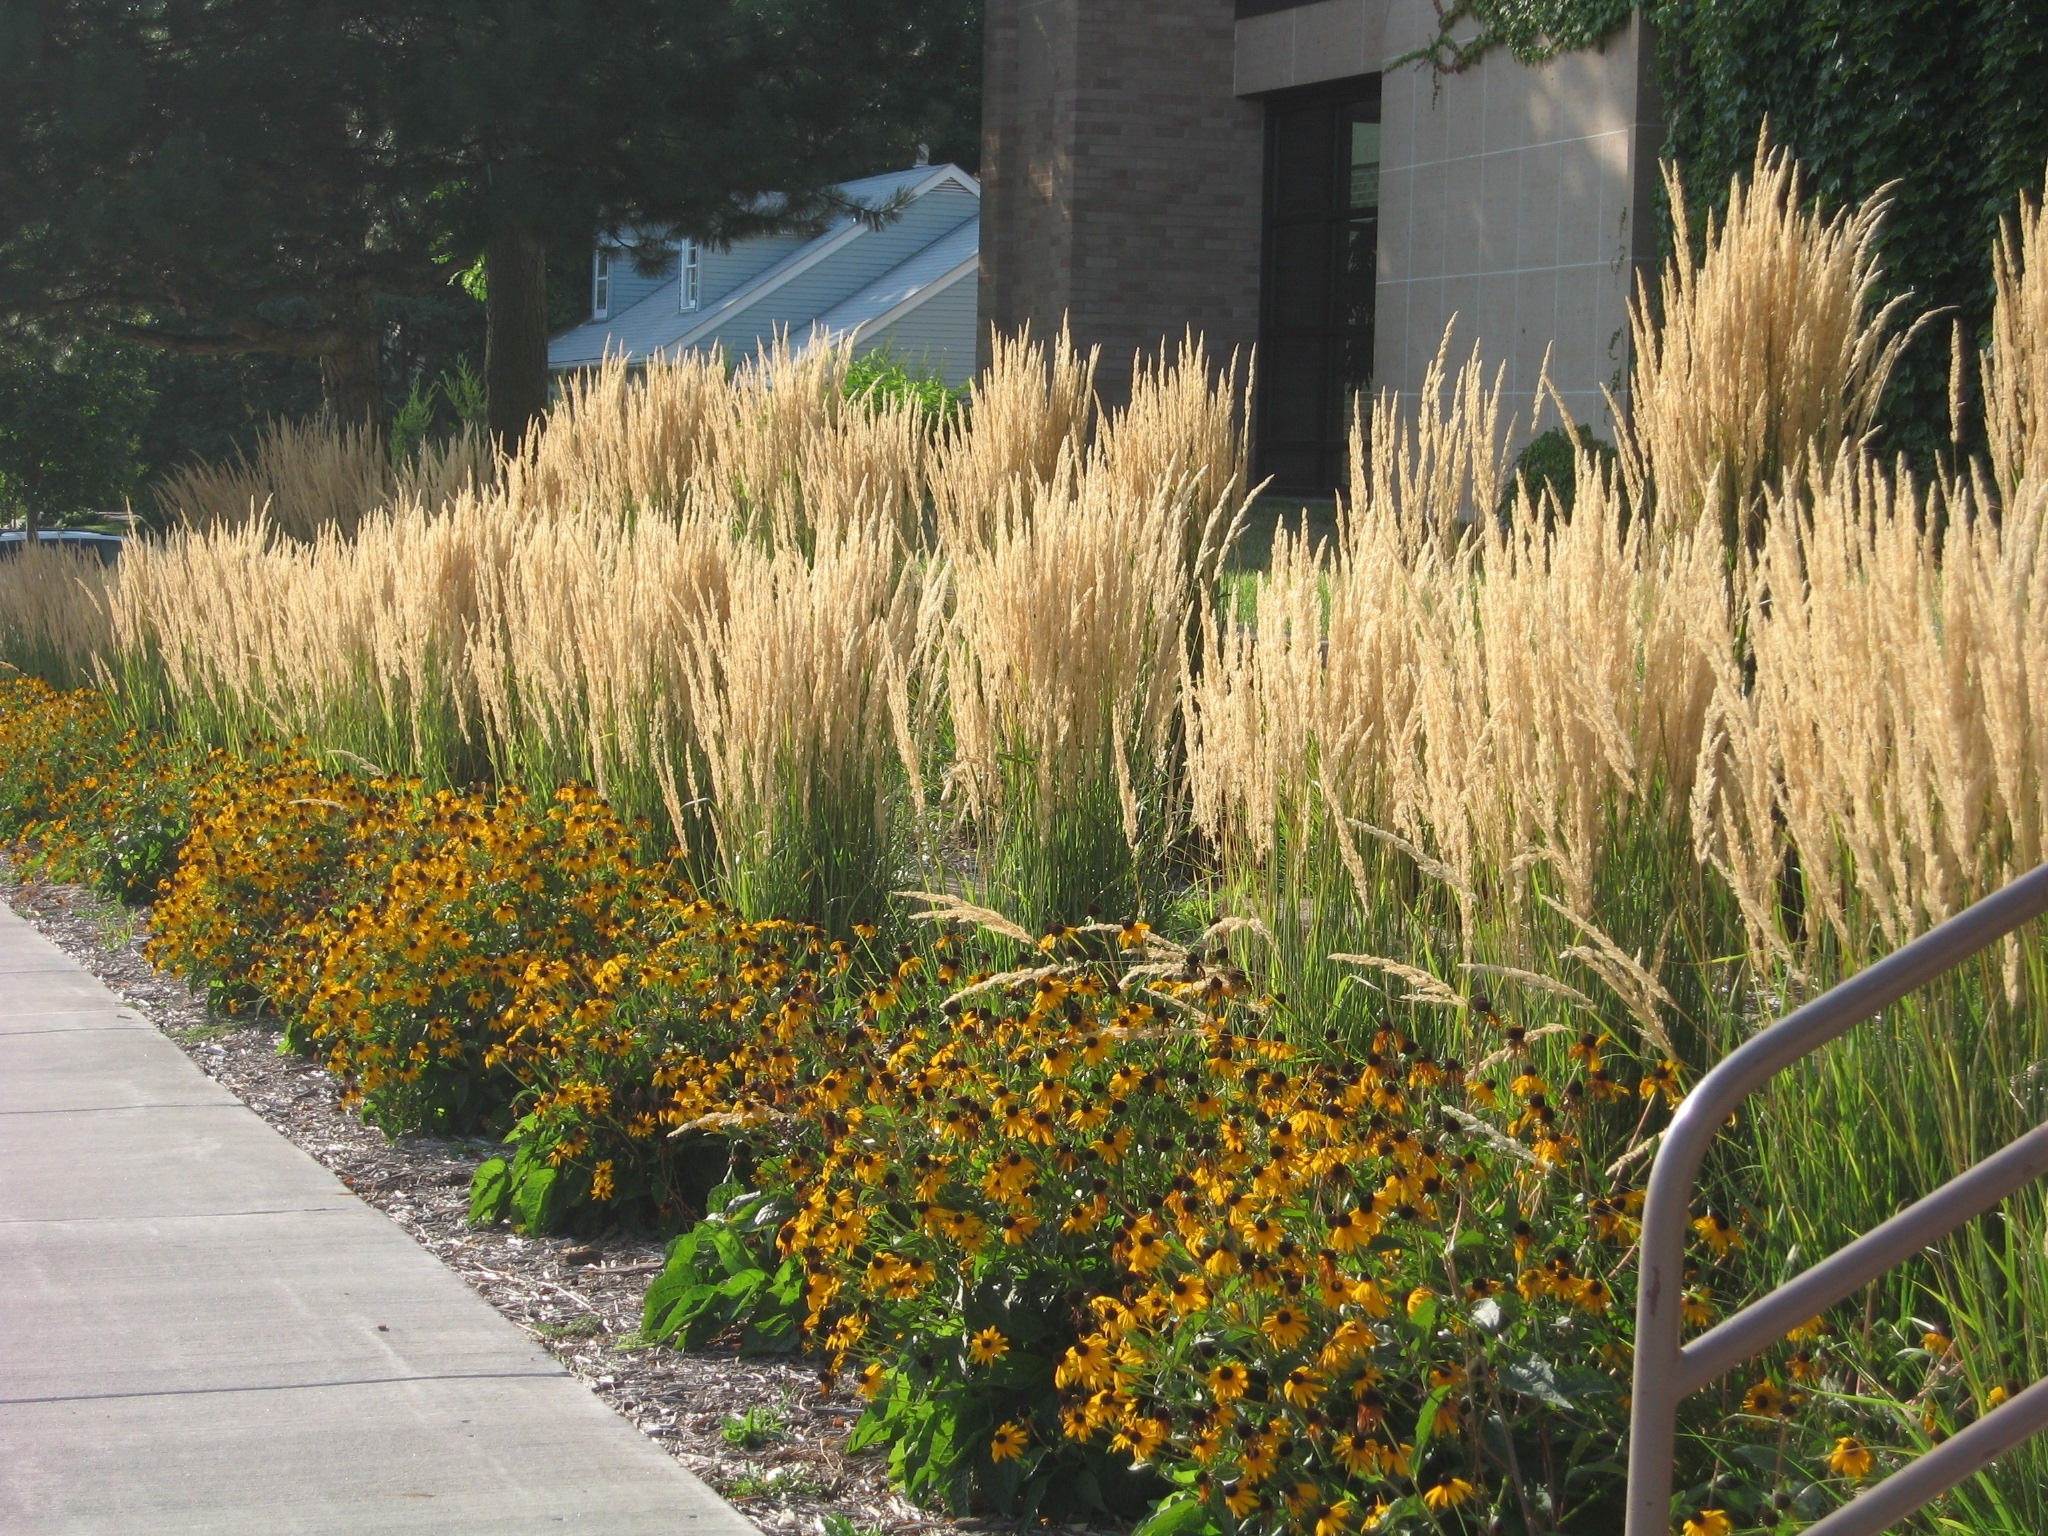 Image of: Ornamental Grasses Are Expected To Continue To Dominate In 2015 Within Landscaping Grasses Landscaping Grasses For Backyard